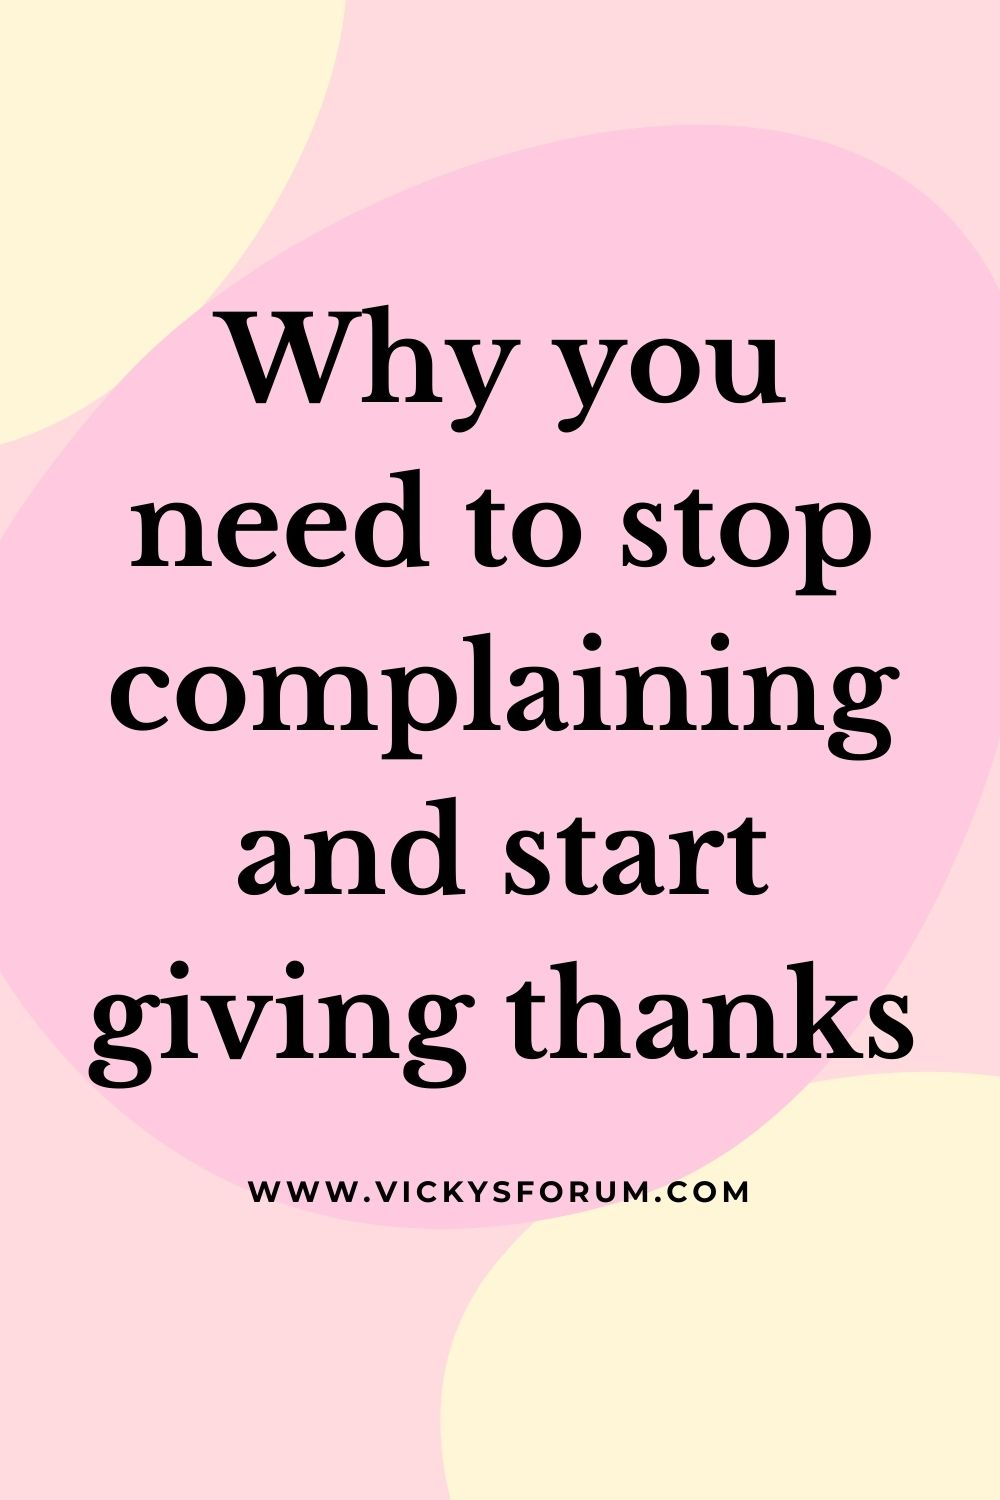 Stop complaining and give thanks